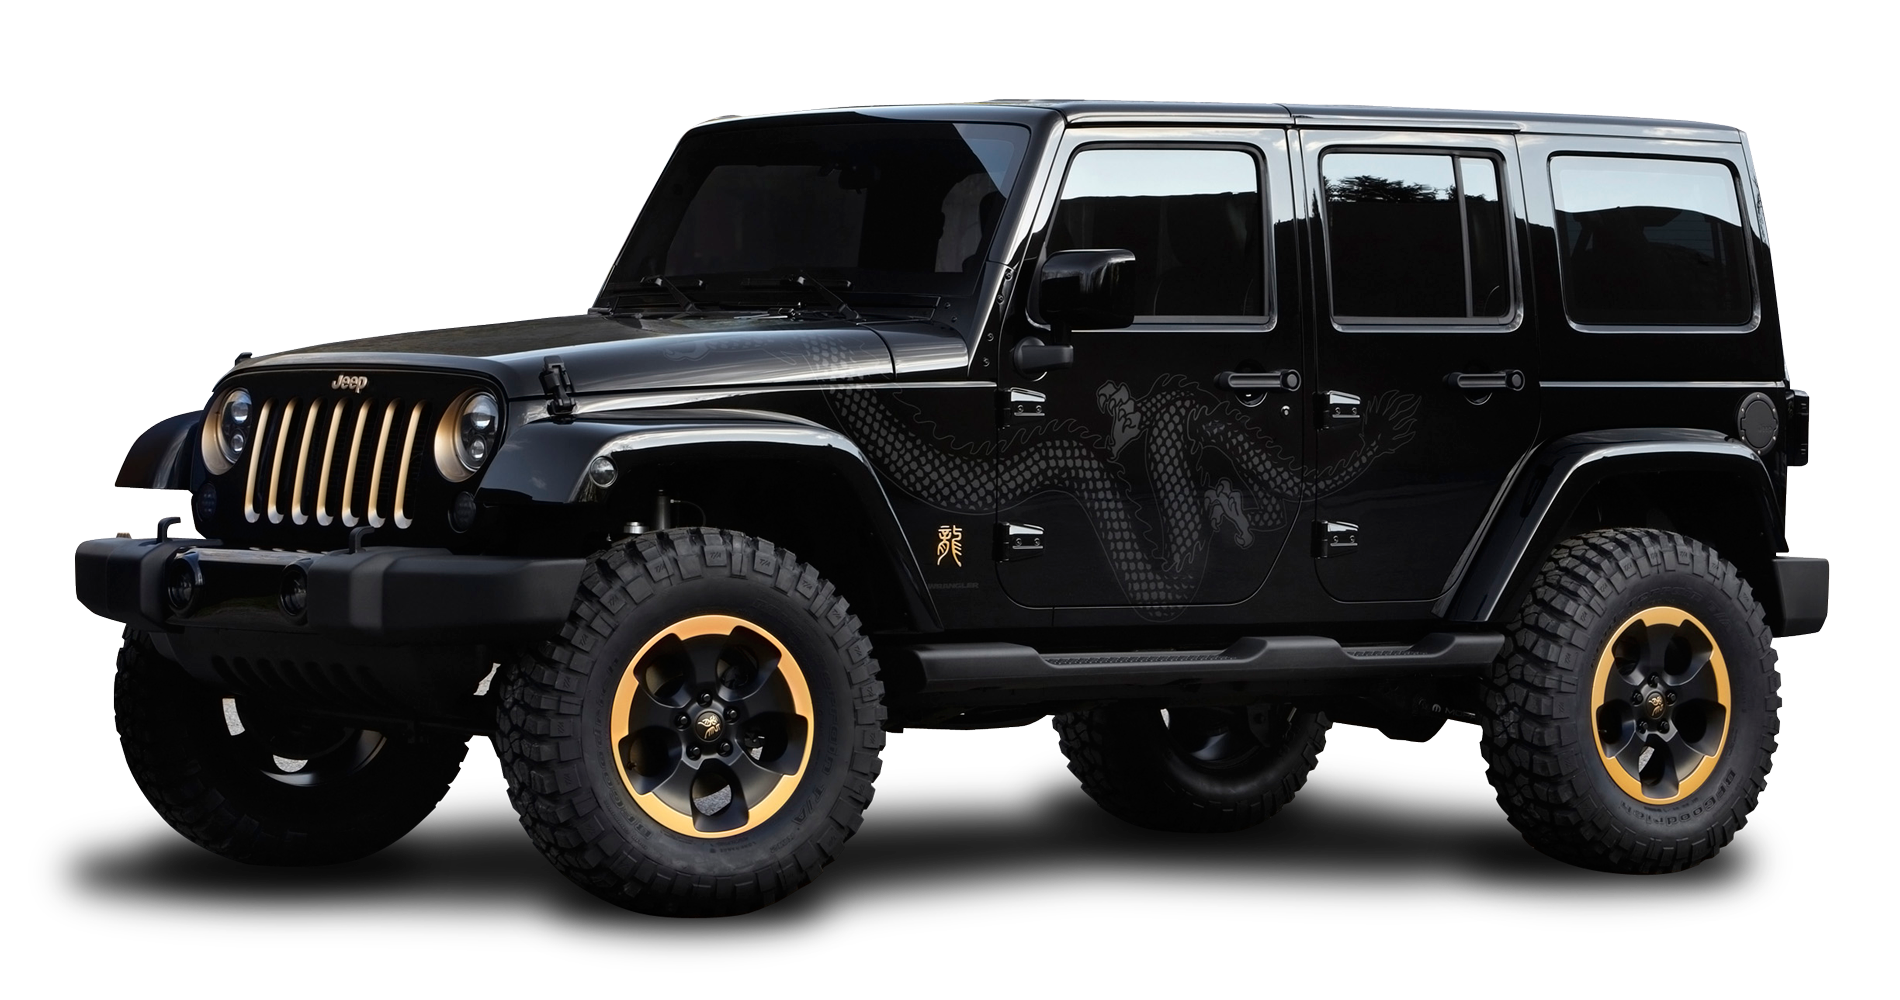 Jeep png images. Image purepng free transparent